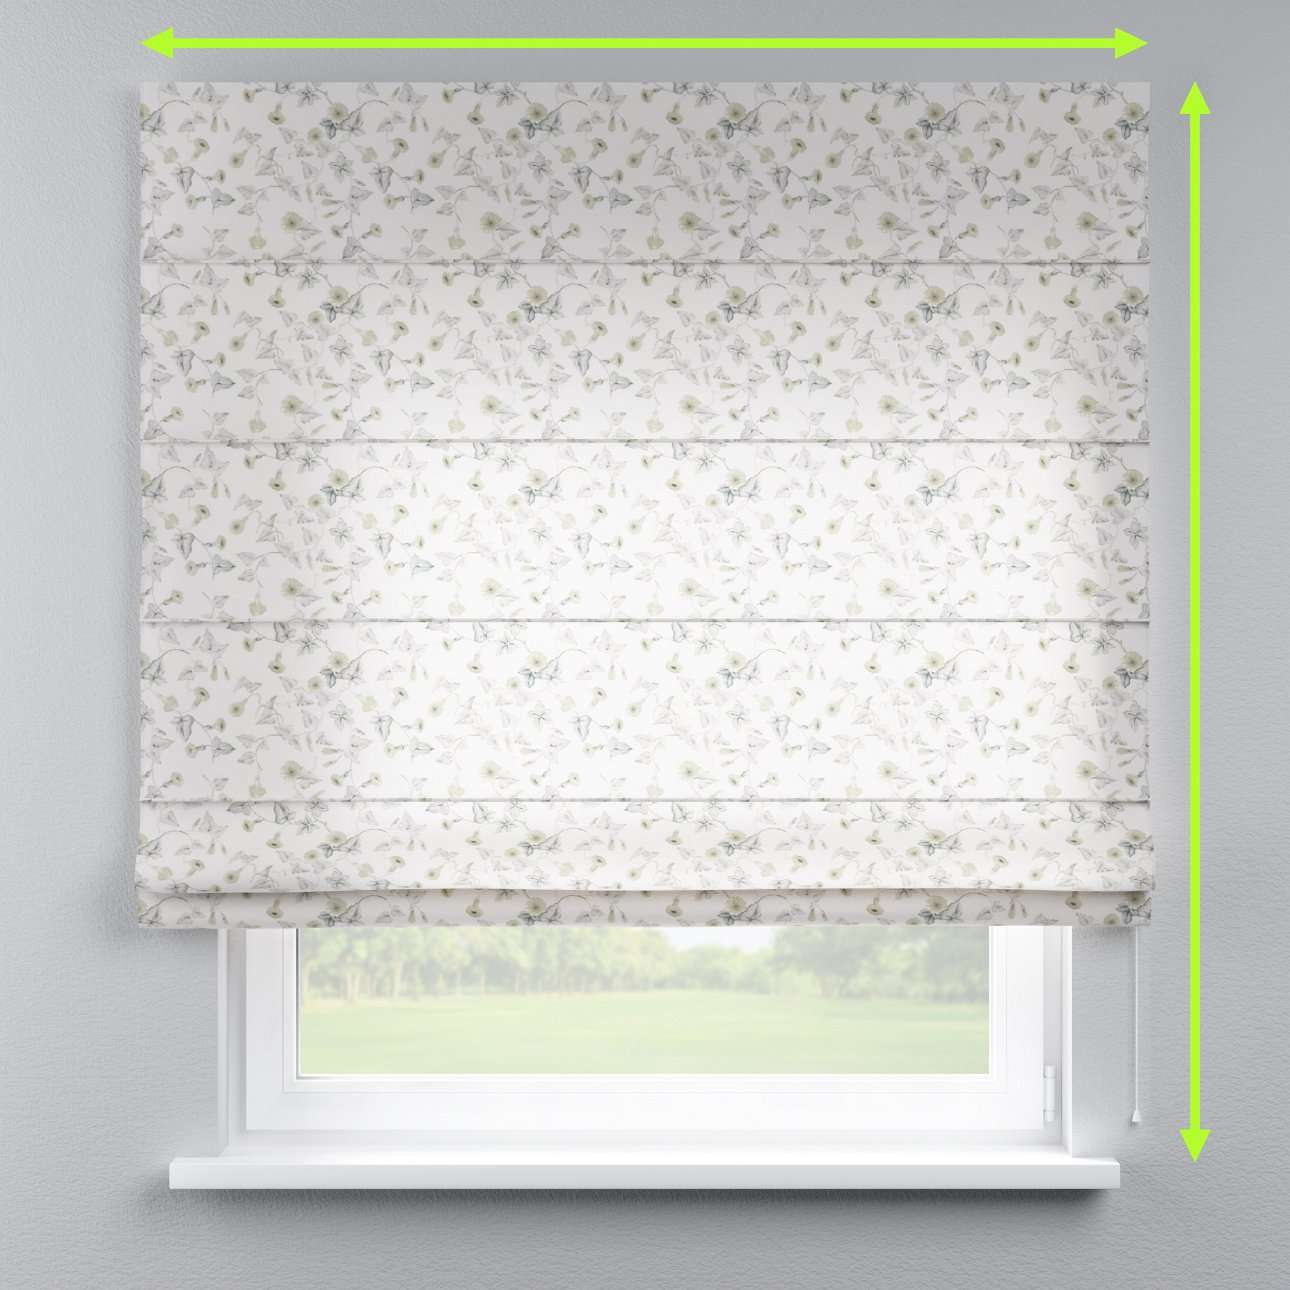 Capri roman blind in collection Mirella, fabric: 140-42